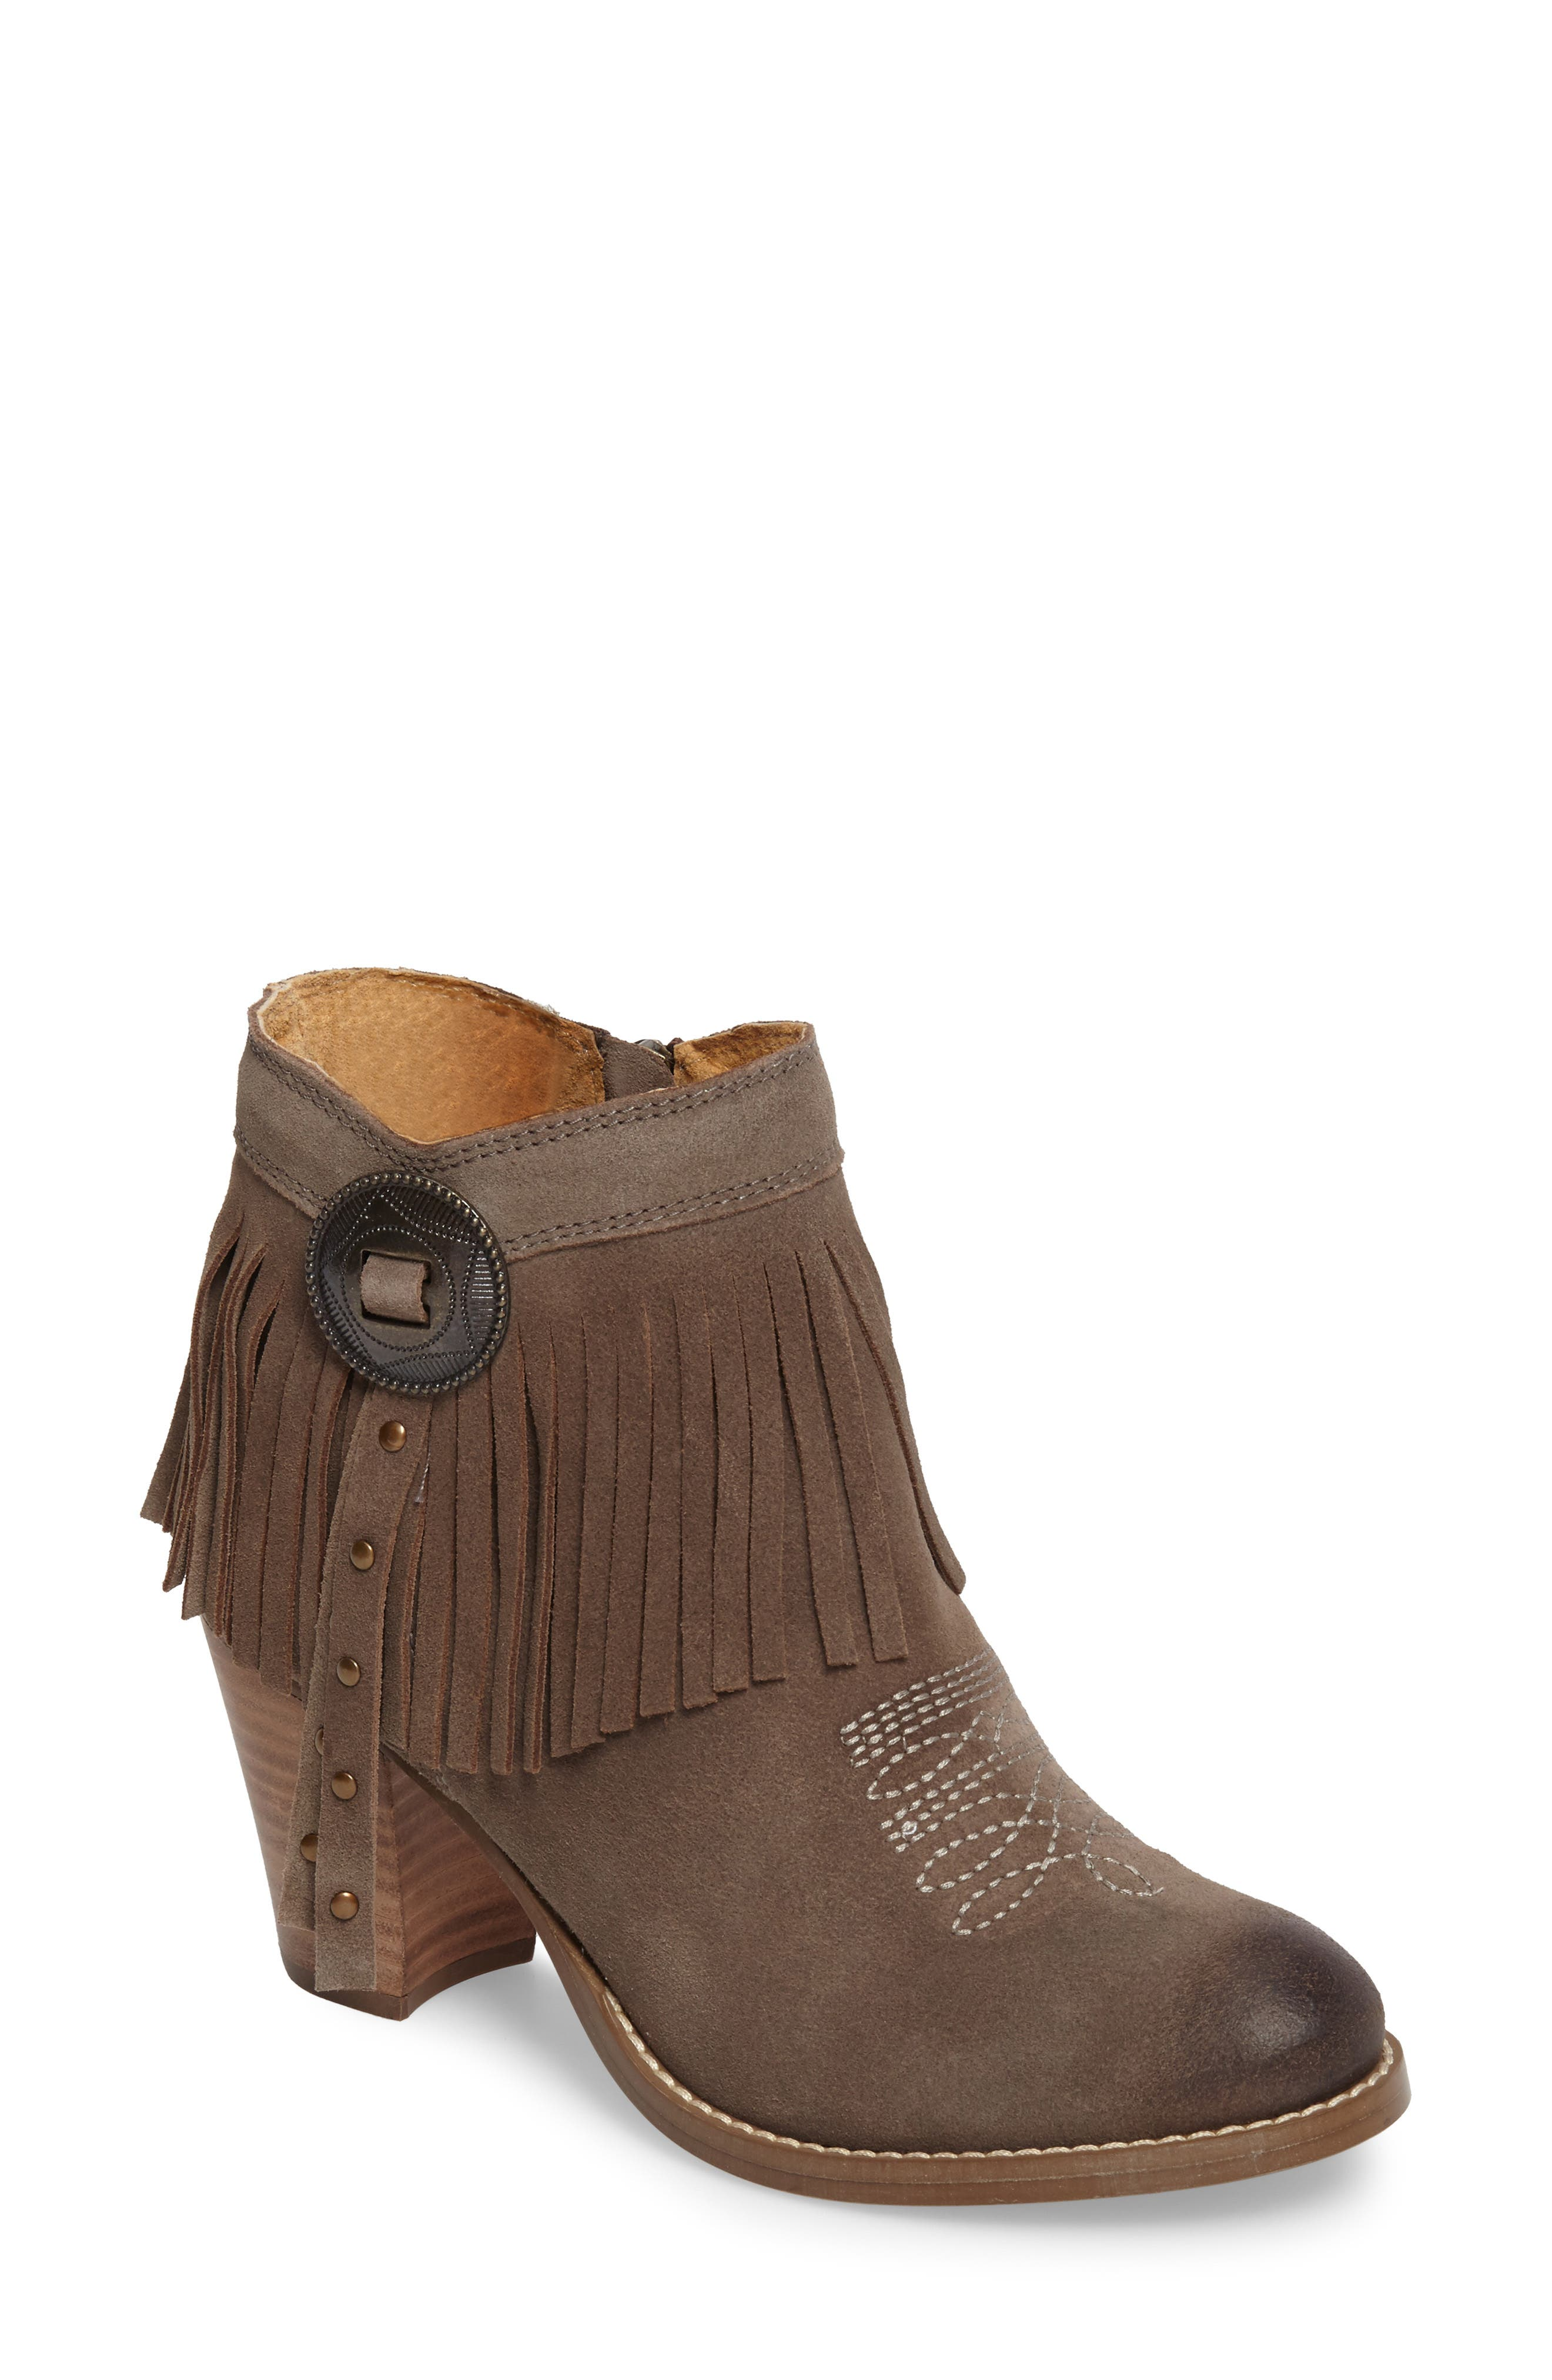 Unbridled Avery Bootie,                         Main,                         color, 200